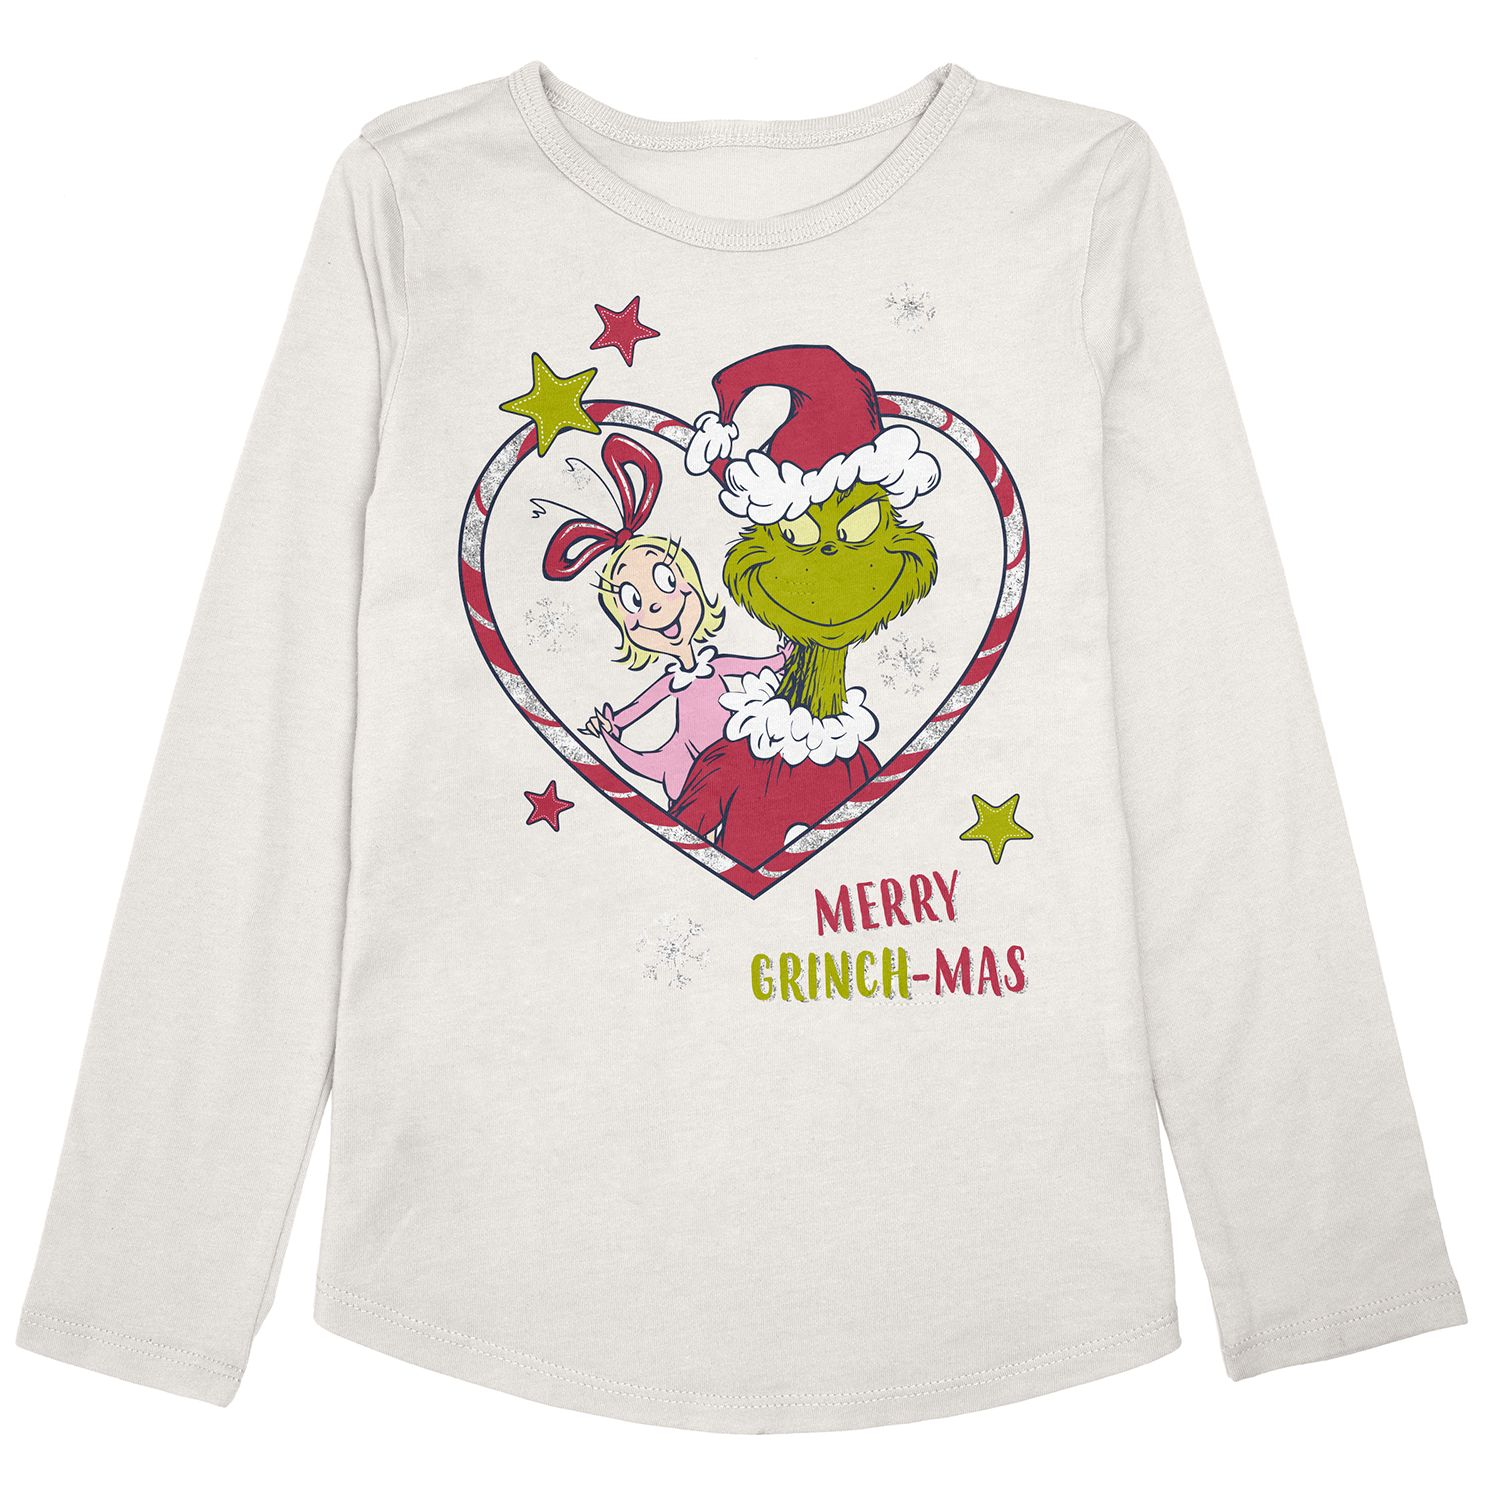 New Kids Boys Girls Casual The Grinch Cartoon T shirts Tops Clothes 4-12 Years